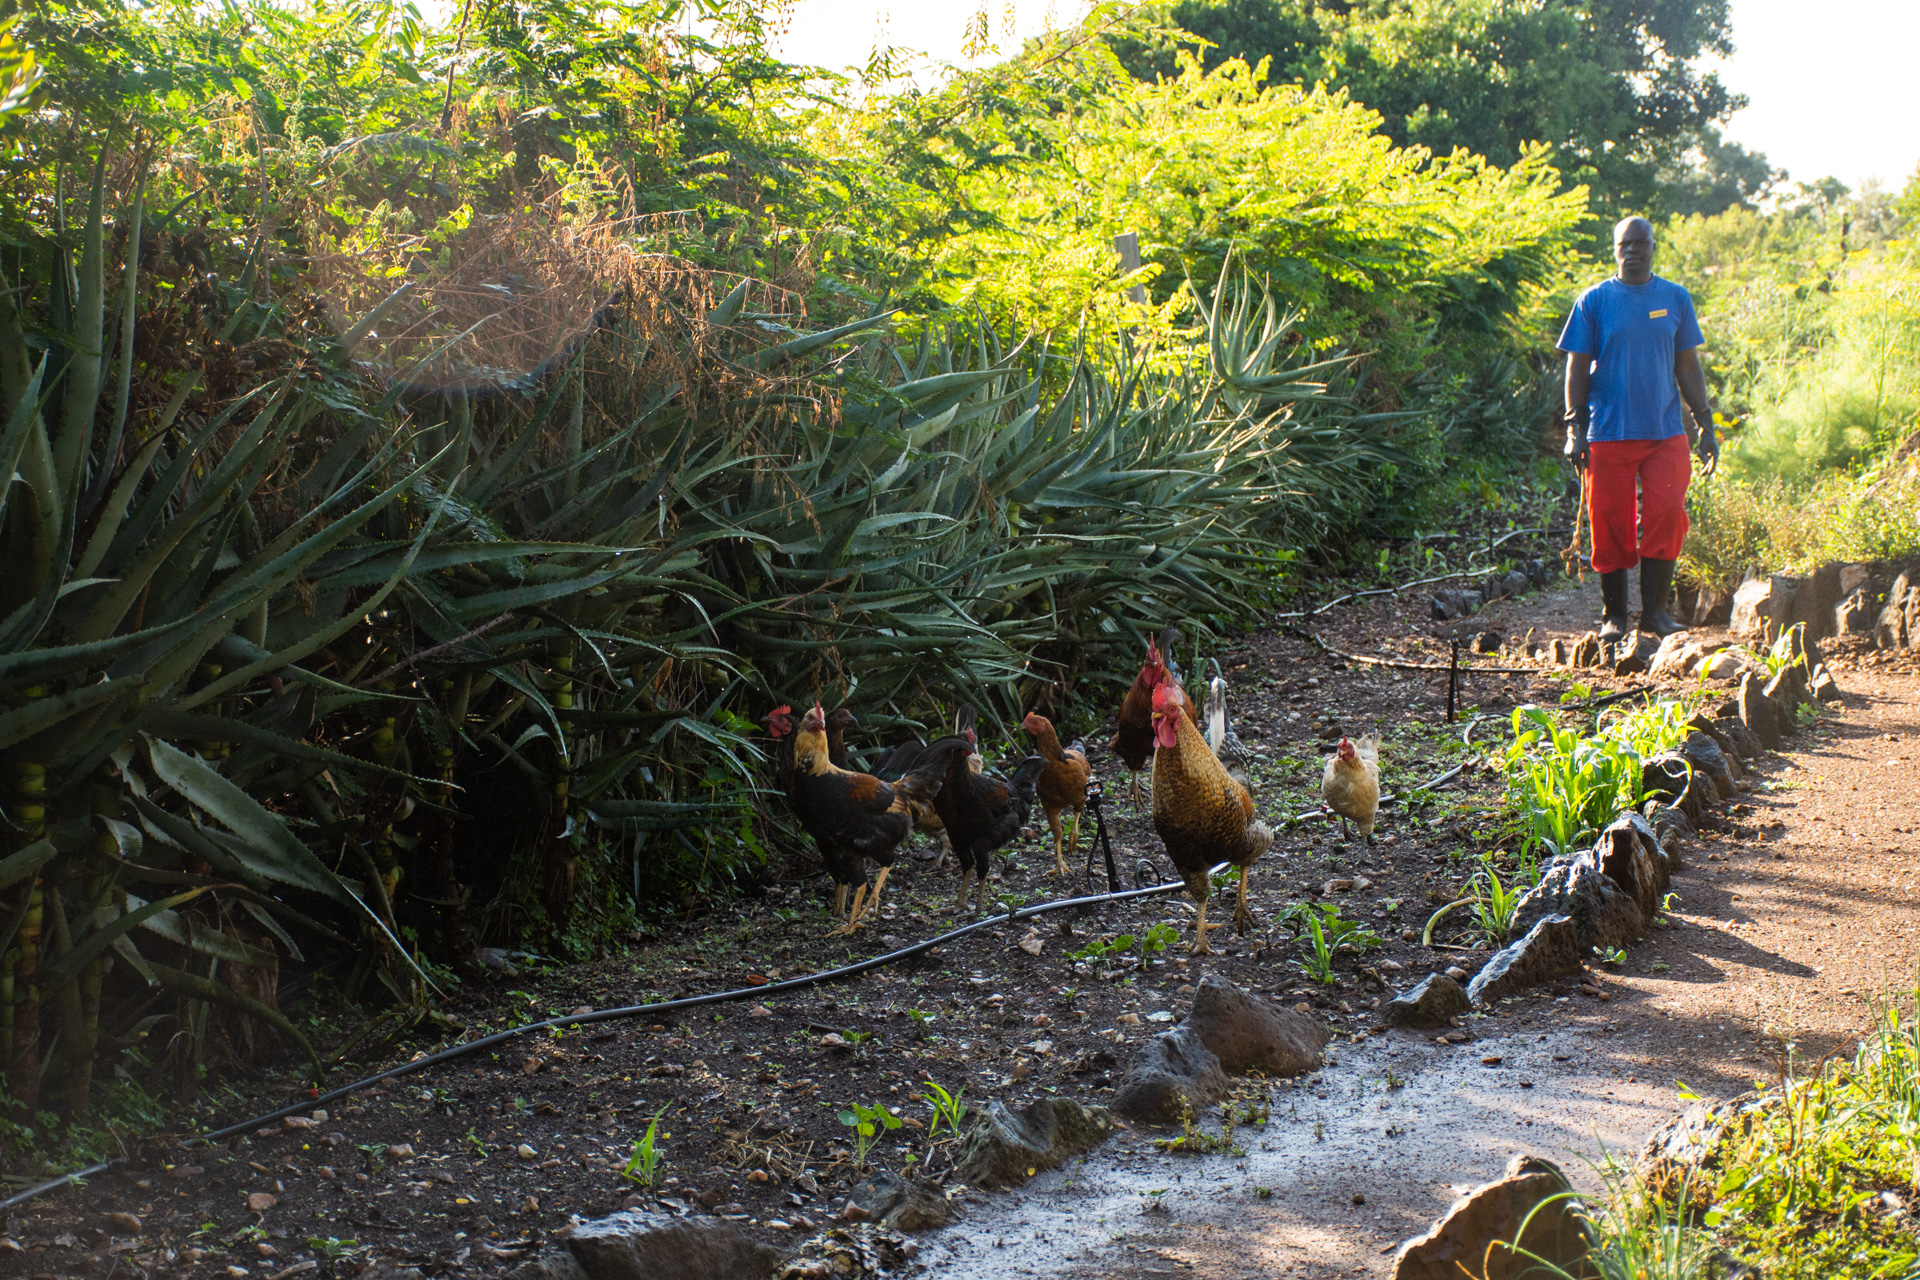 Chickens looking for worms